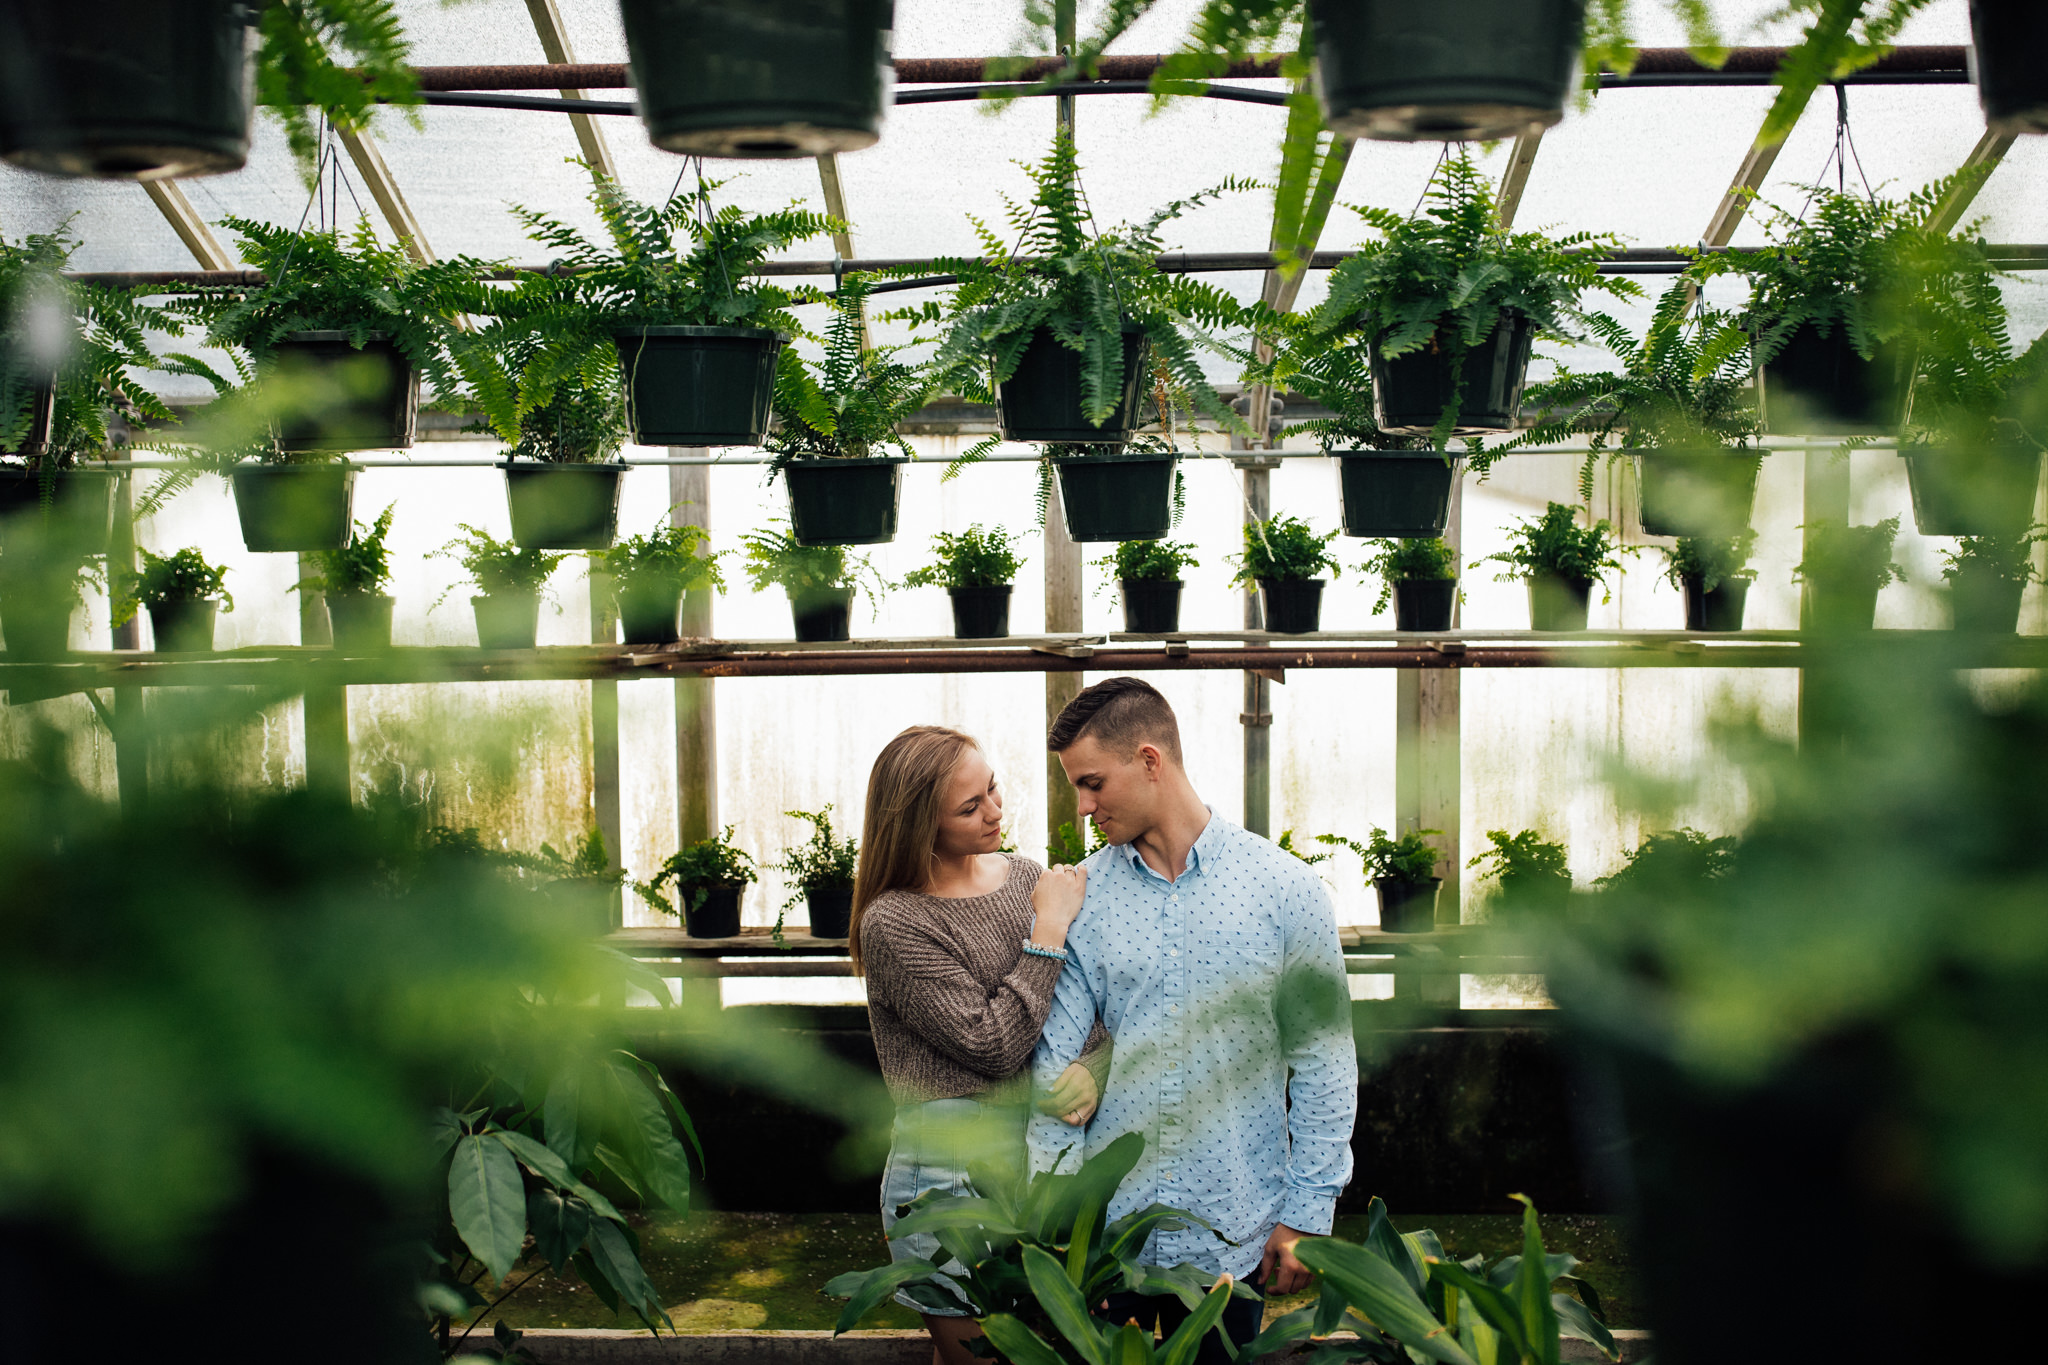 memphis-engagement-photographer-thewarmtharoundyou-greenhouse-engagement-pictures (23 of 118).jpg